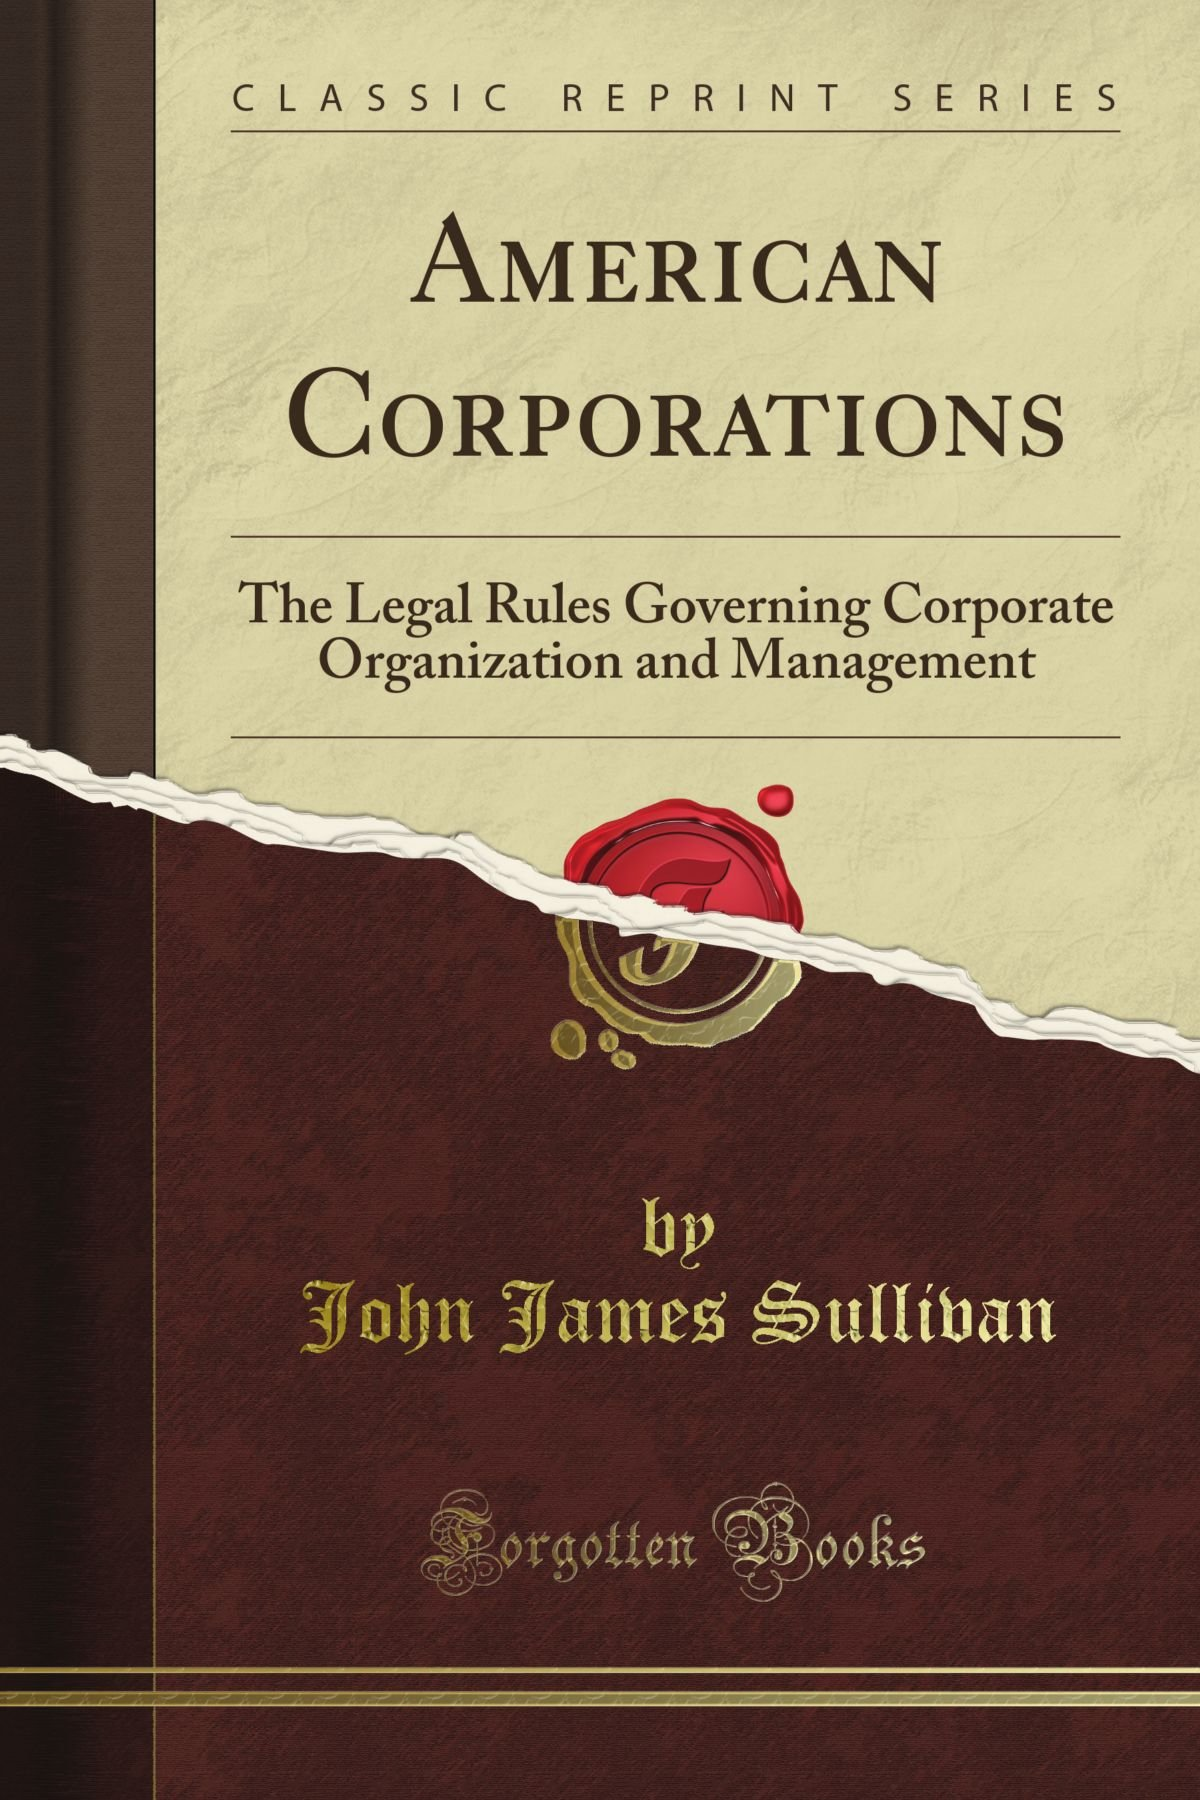 American Corporations: The Legal Rules Governing Corporate Organization and Management (Classic Reprint) PDF